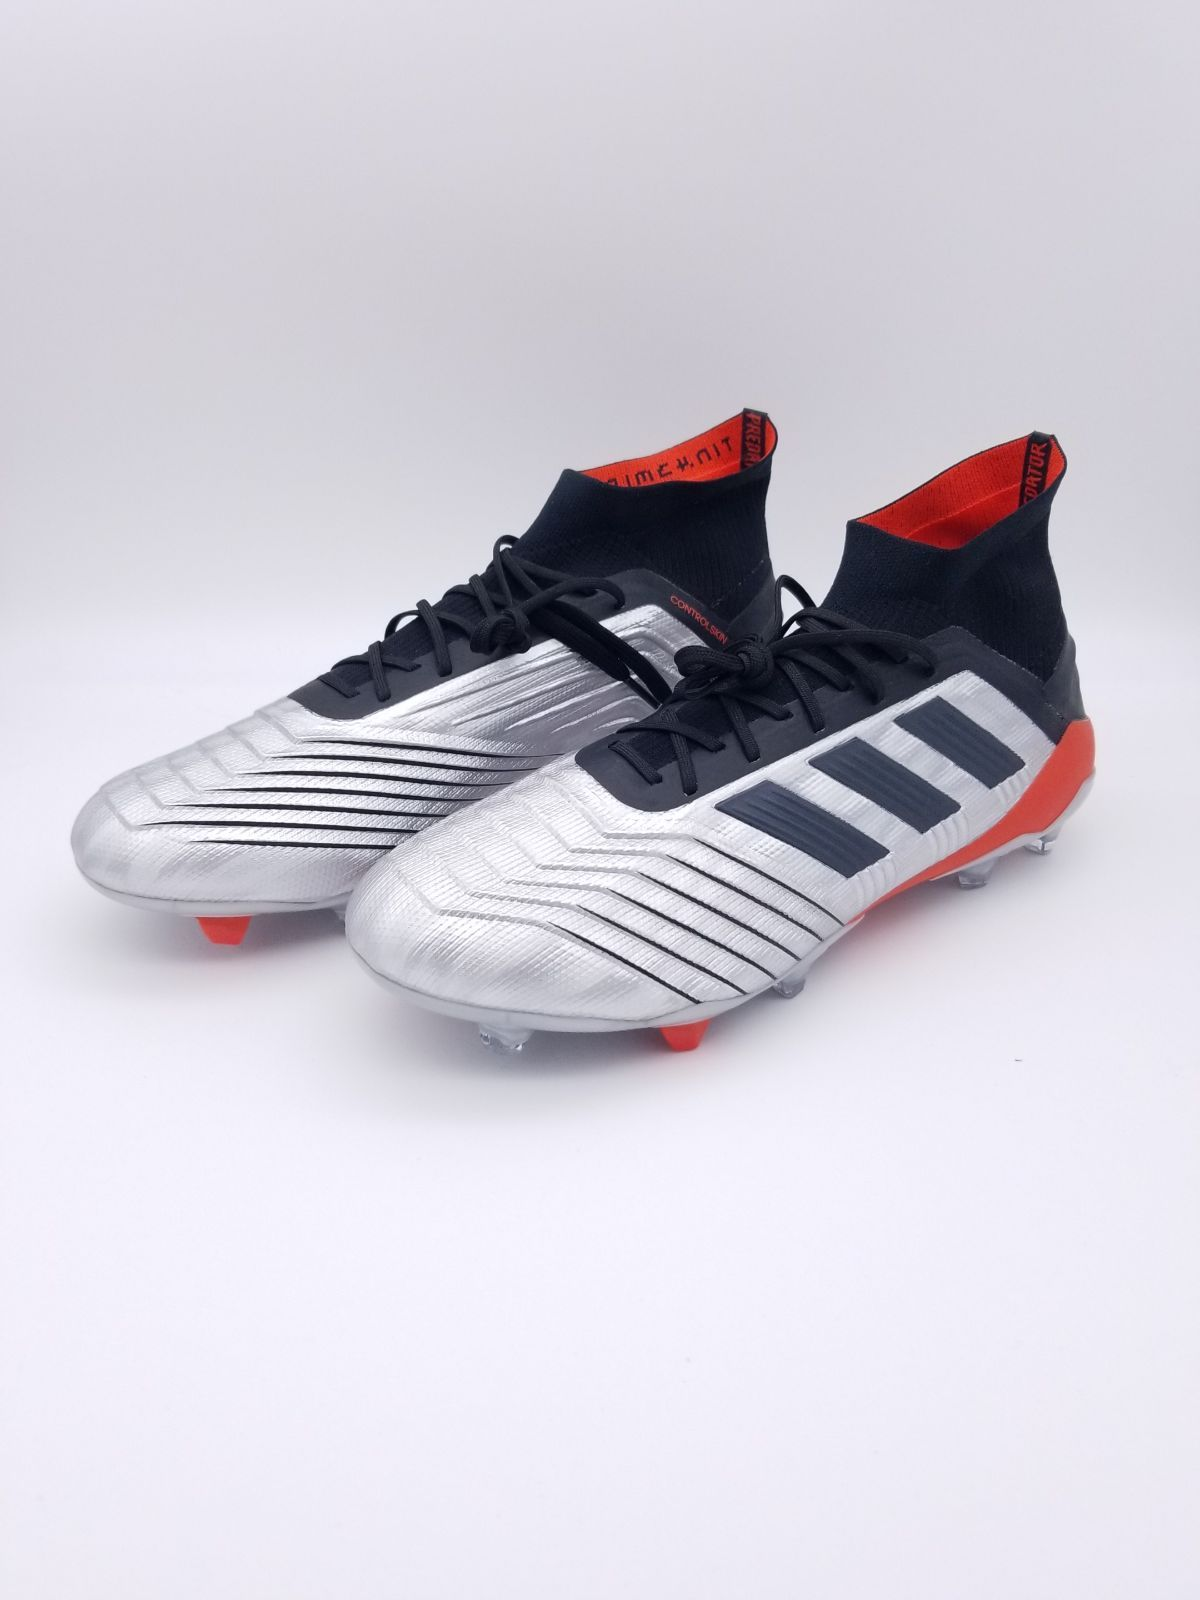 New Adidas Predator 19.1 Silver Black and Red Men's Soccer